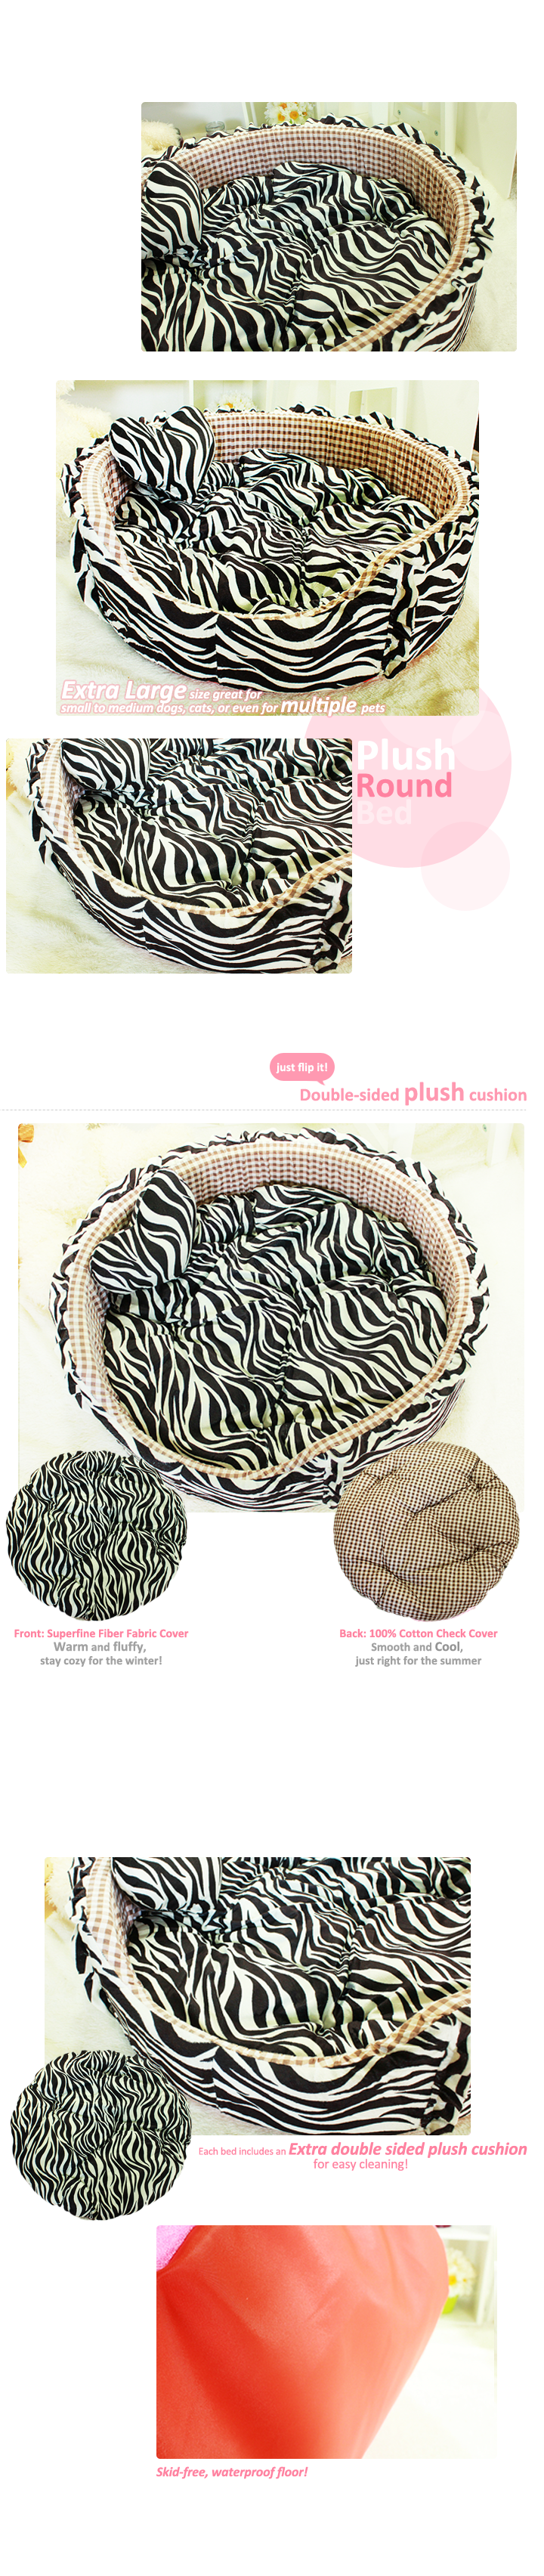 zebra-plush-round-bed-2.png